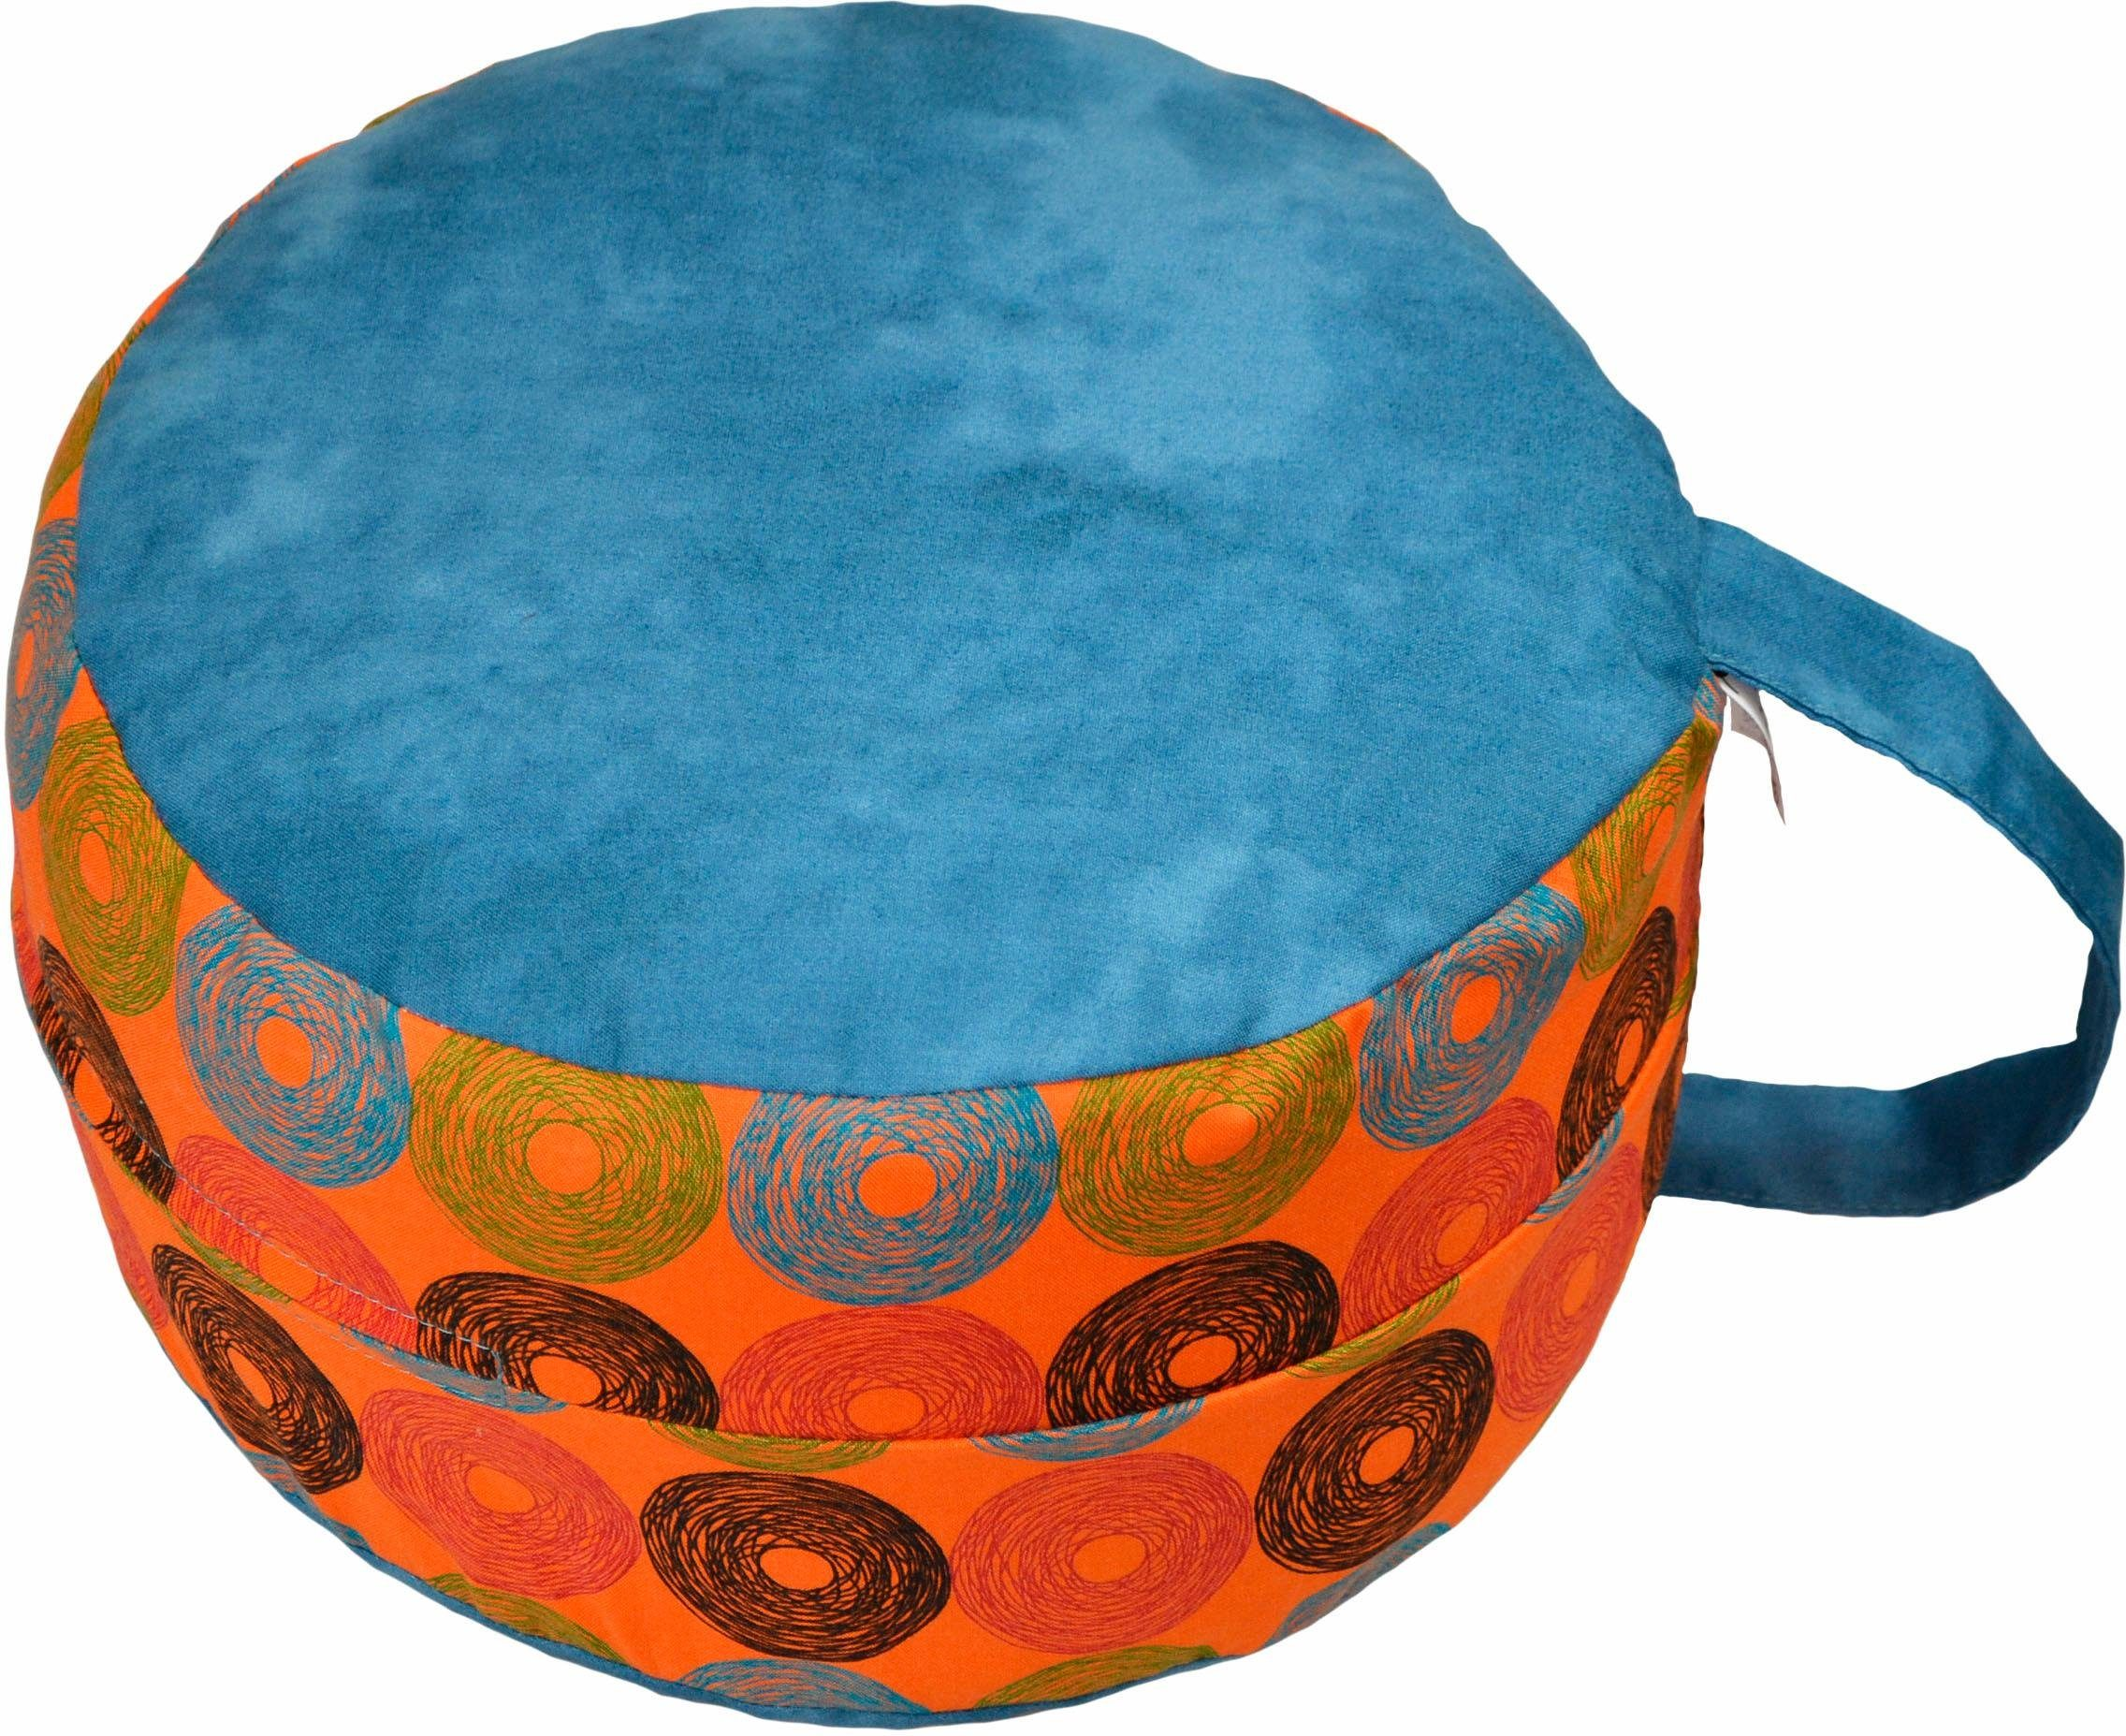 Mediations-/Yogakissen, »6520 blau/Retrokreise orange«, Herbalind